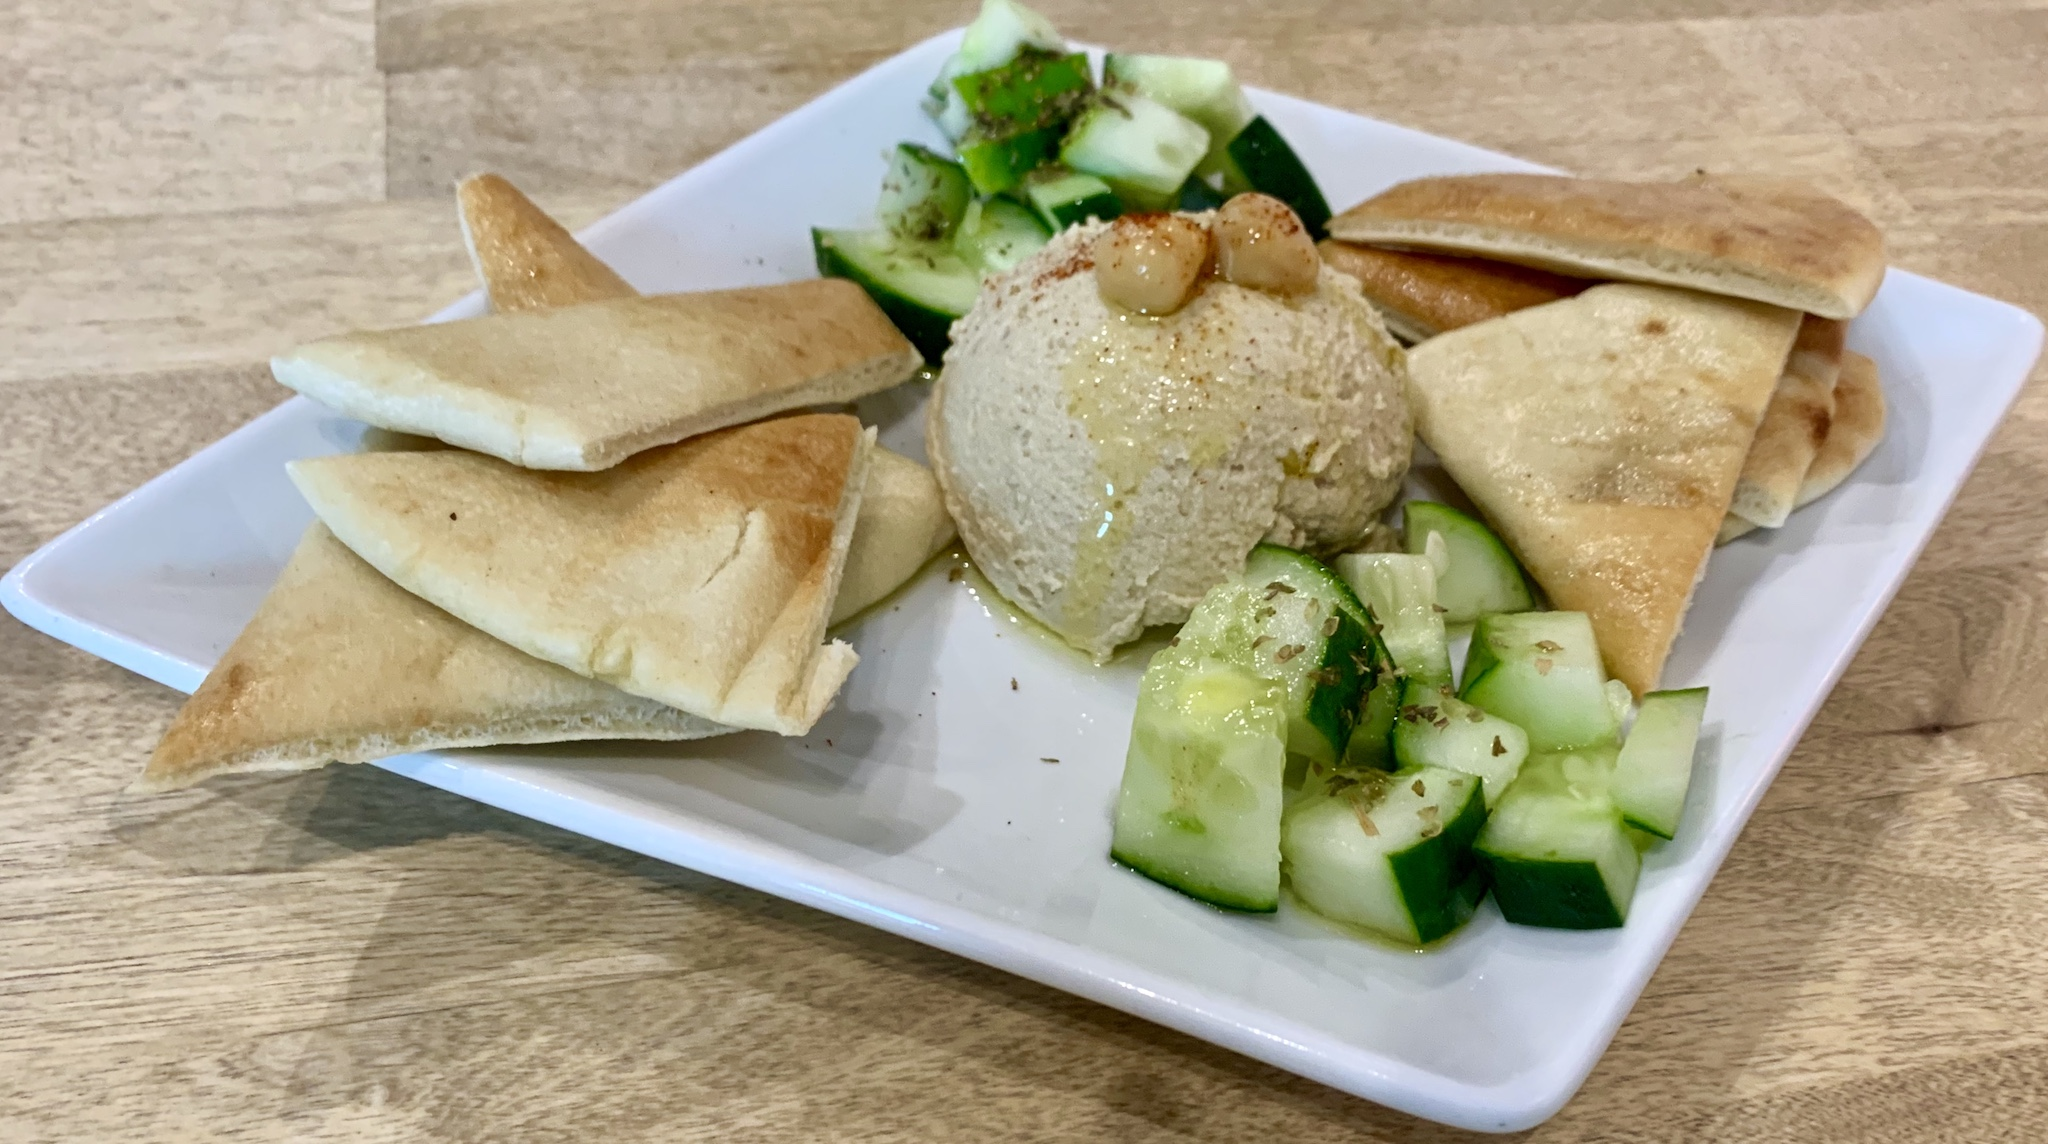 Mio's Grill & Cafe Hummus